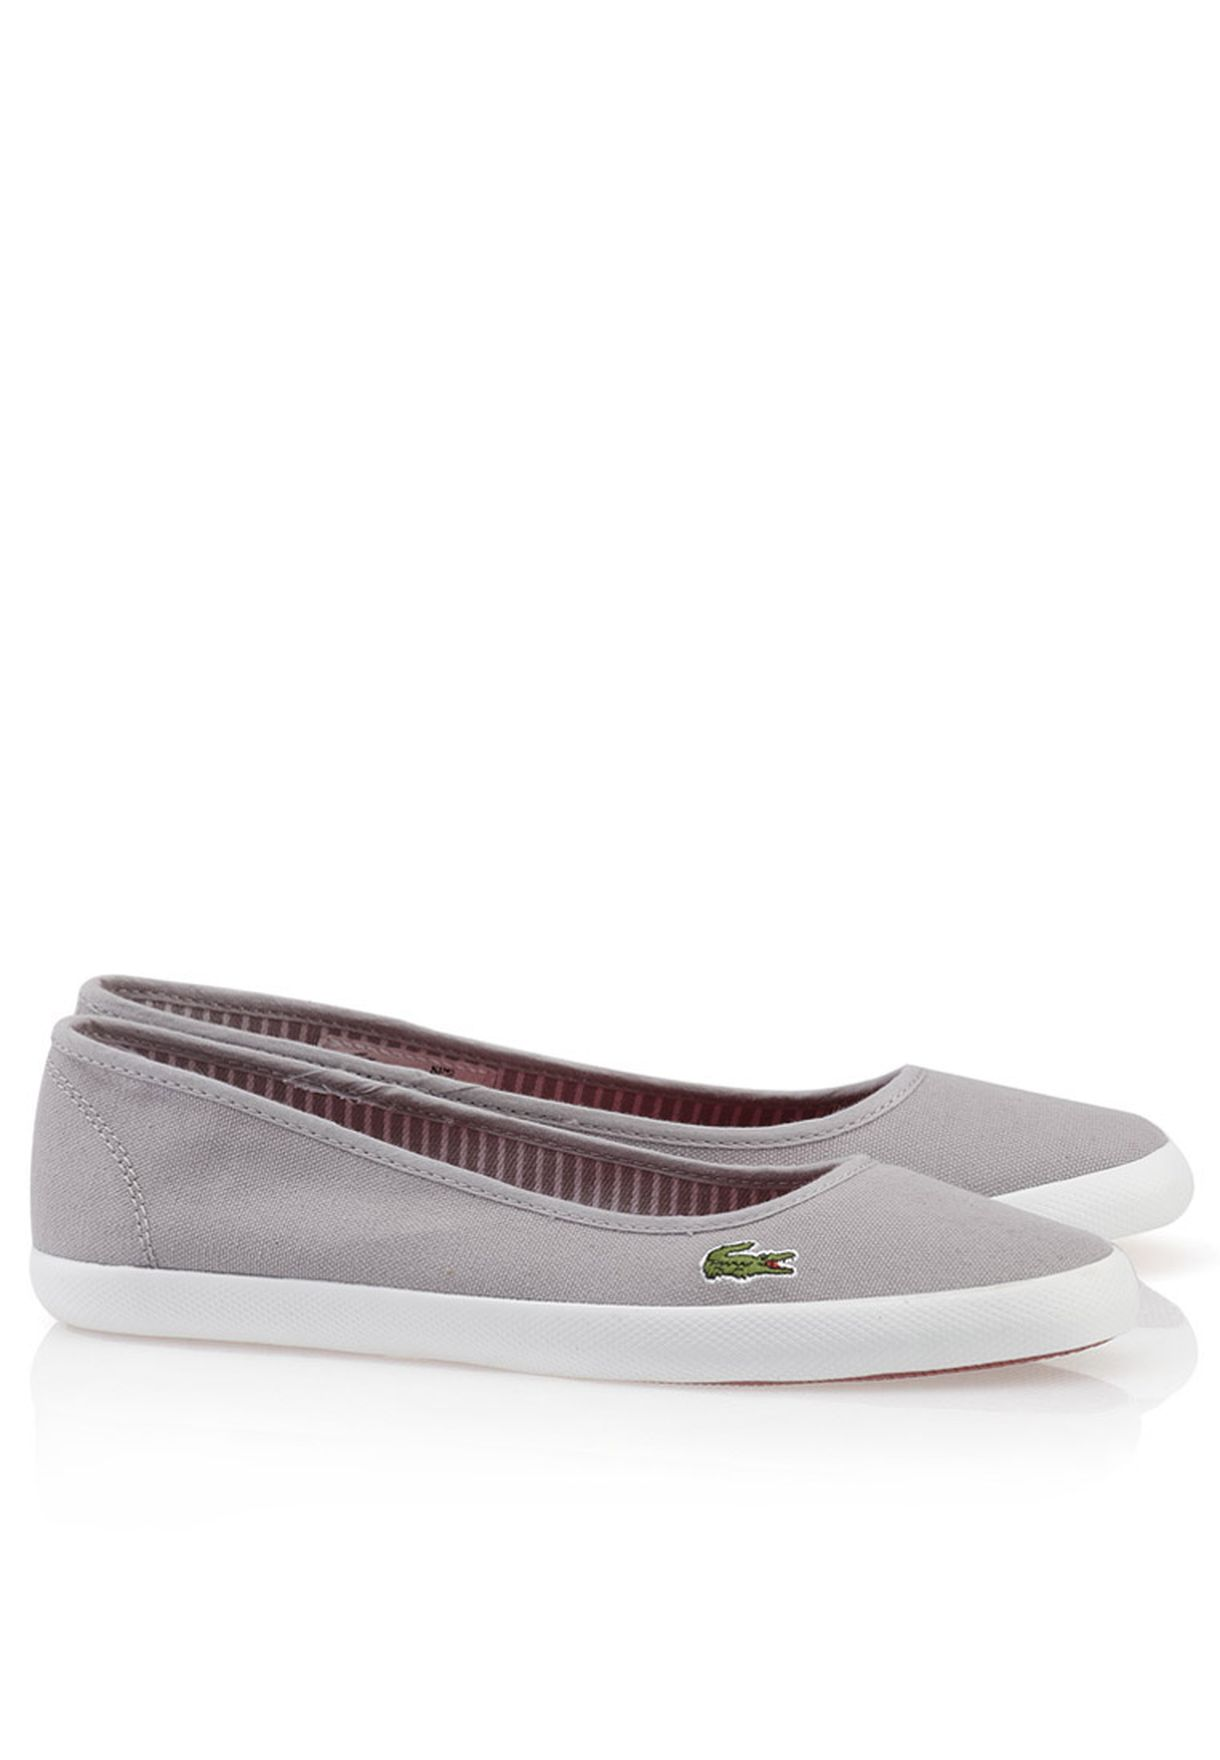 4d344324d096 Shop Lacoste grey Marthe FRS Slip ons 27SPW0117-12C for Women in ...